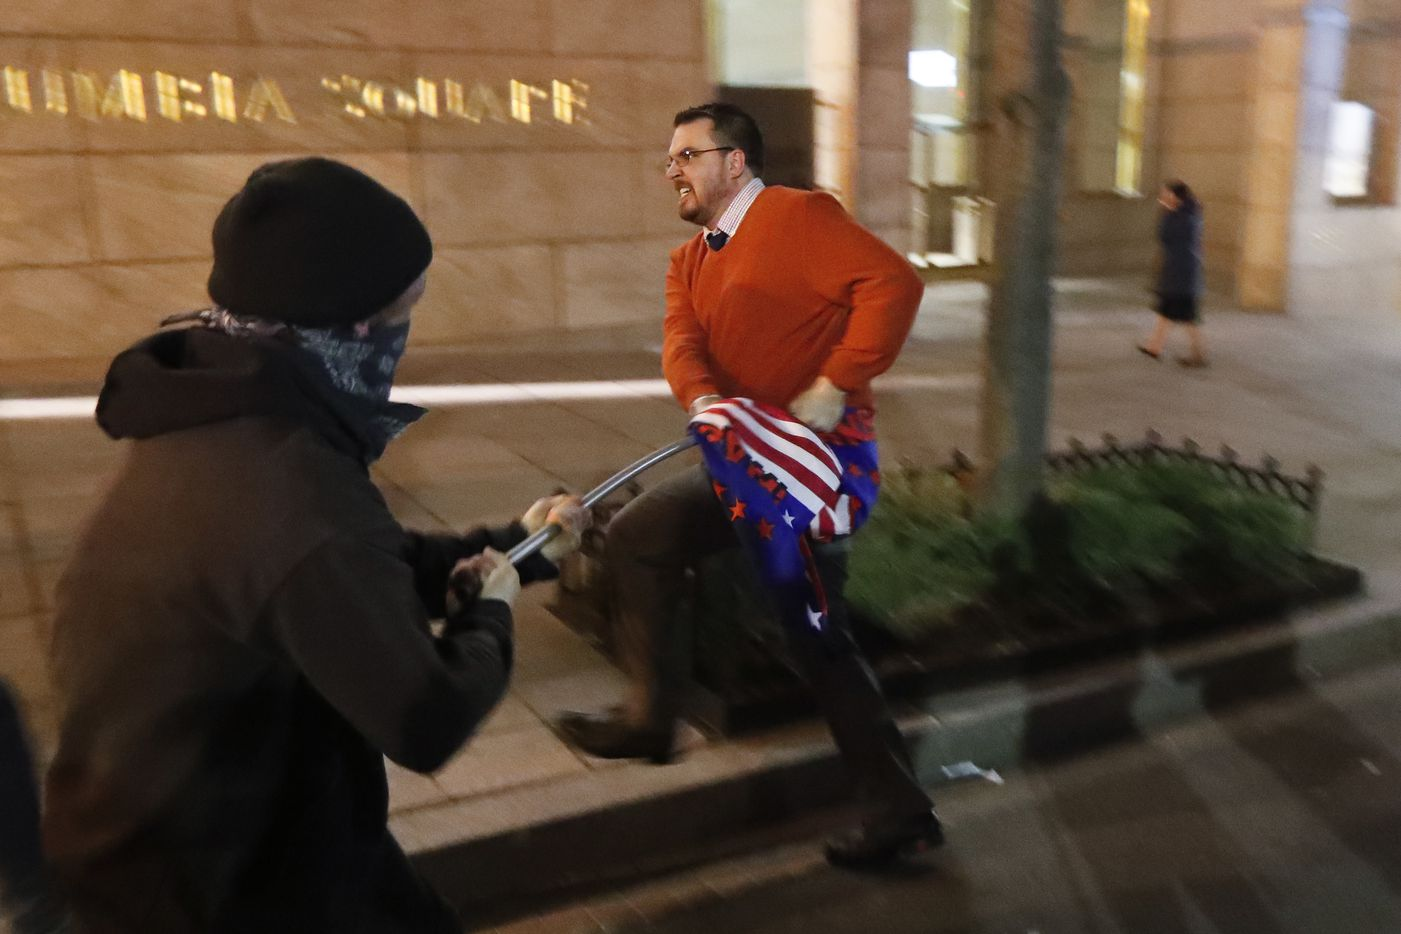 A protester tries to take aTrump supporter's campaign flag during a demonstration ahead of the presidential inauguration, Thursday, Jan. 19, 2017, in Washington.